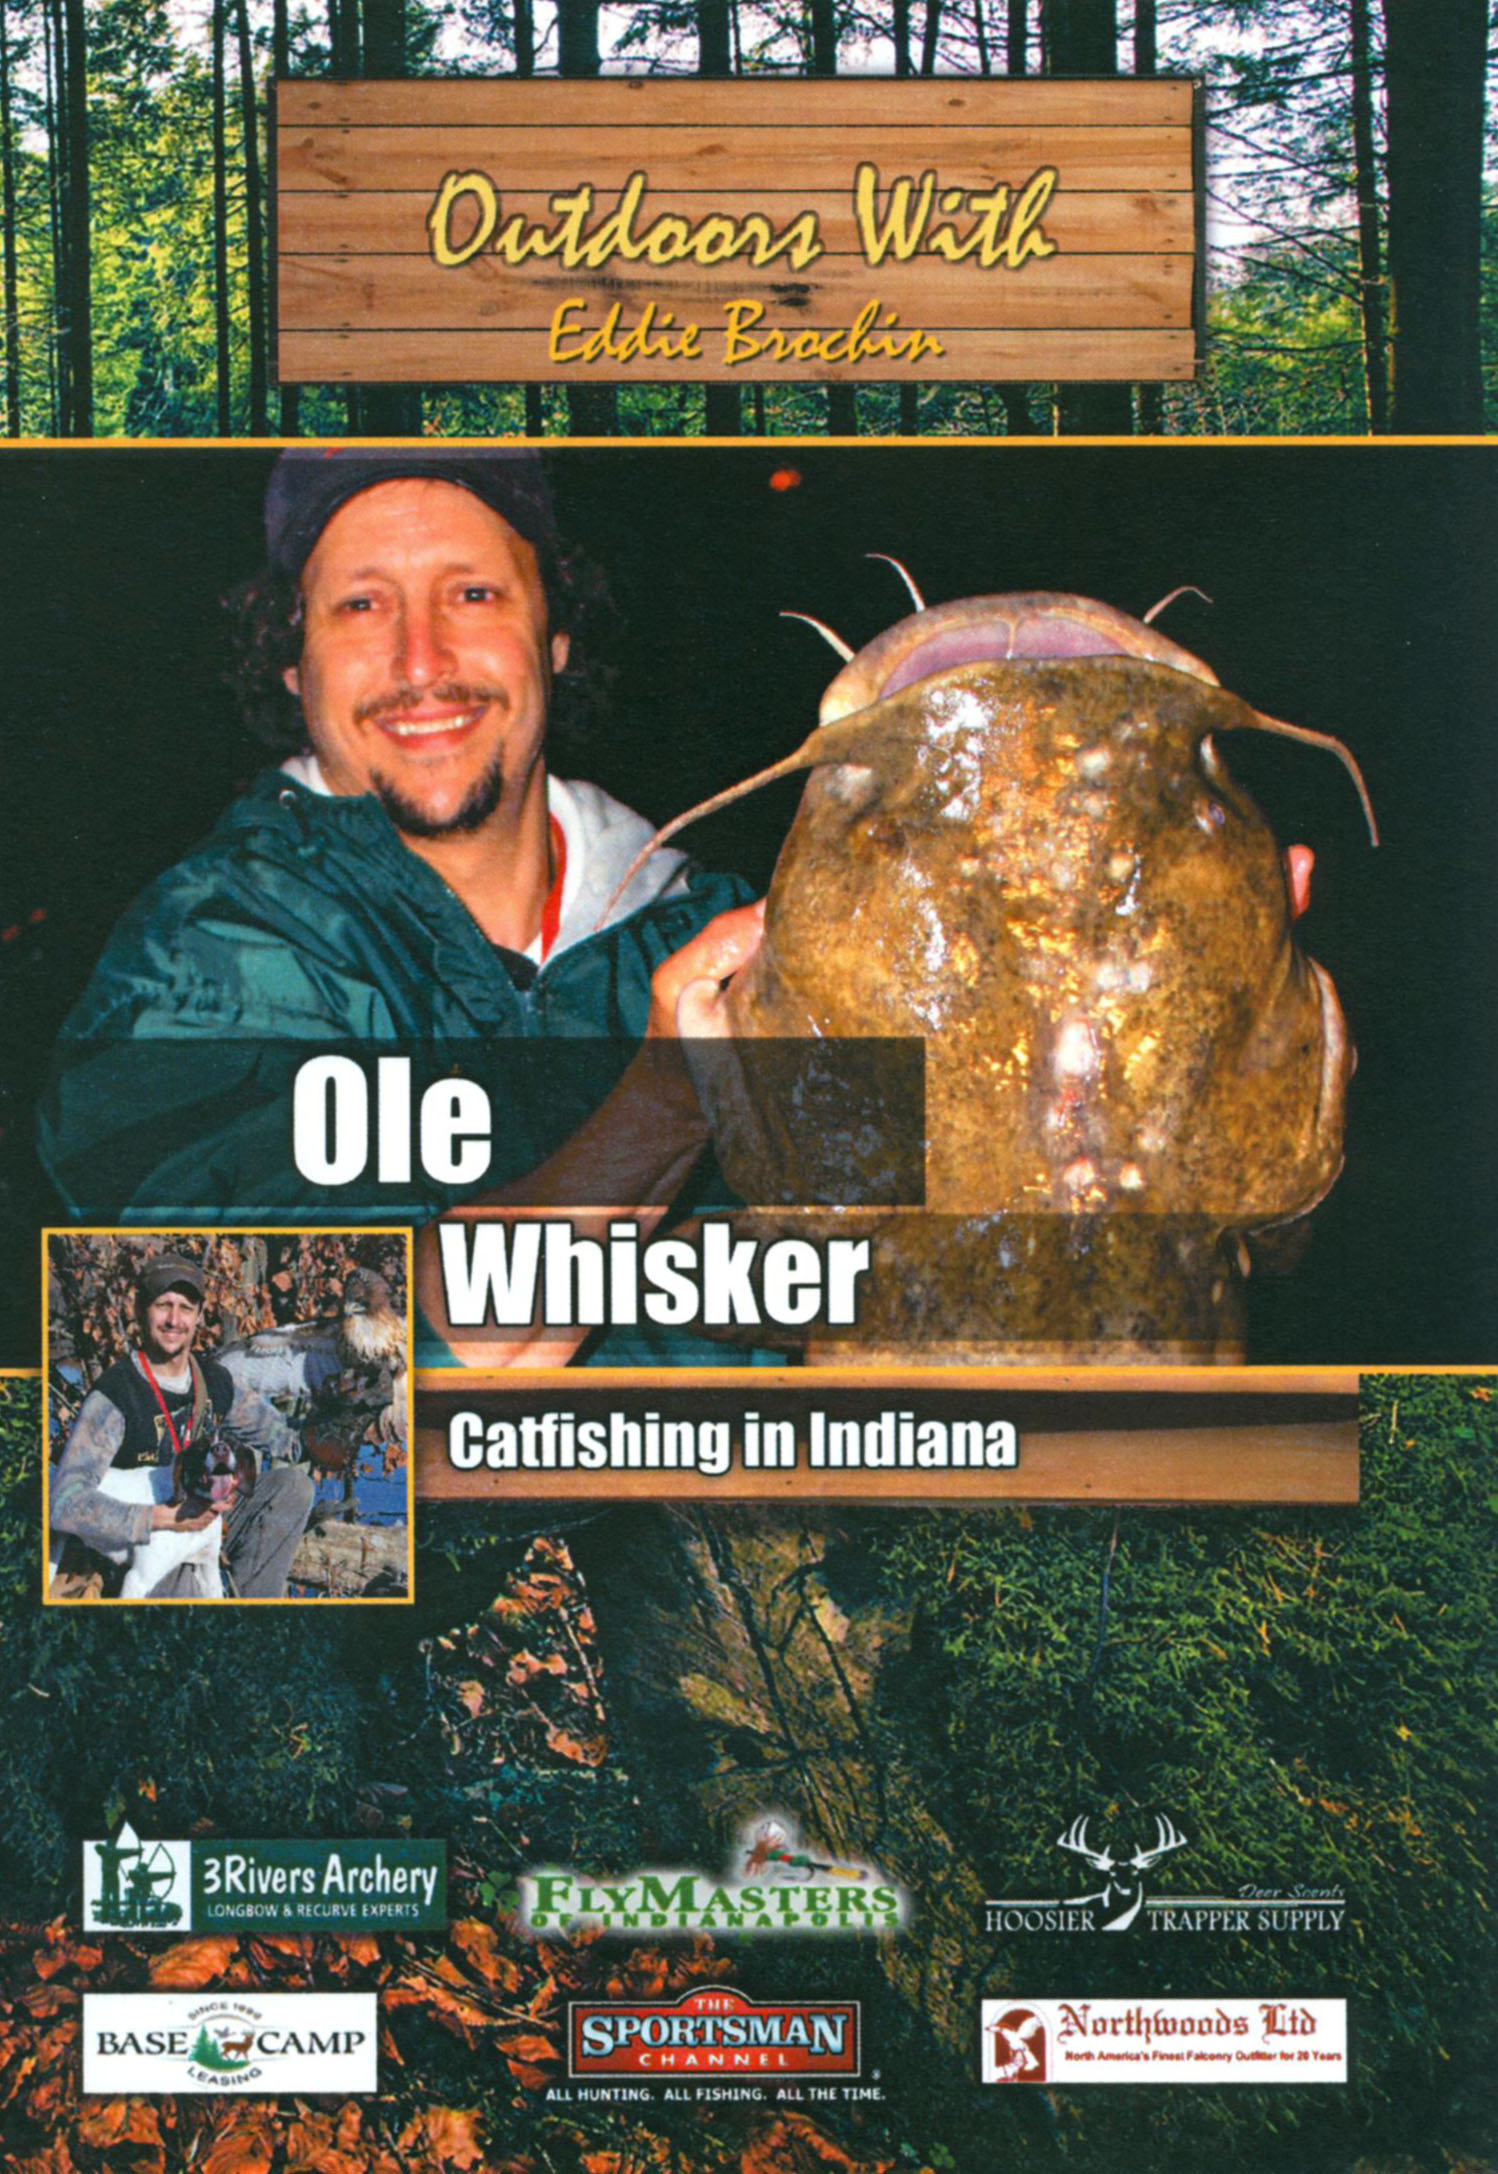 Outdoors With Eddie Brochin: Ole Whisker